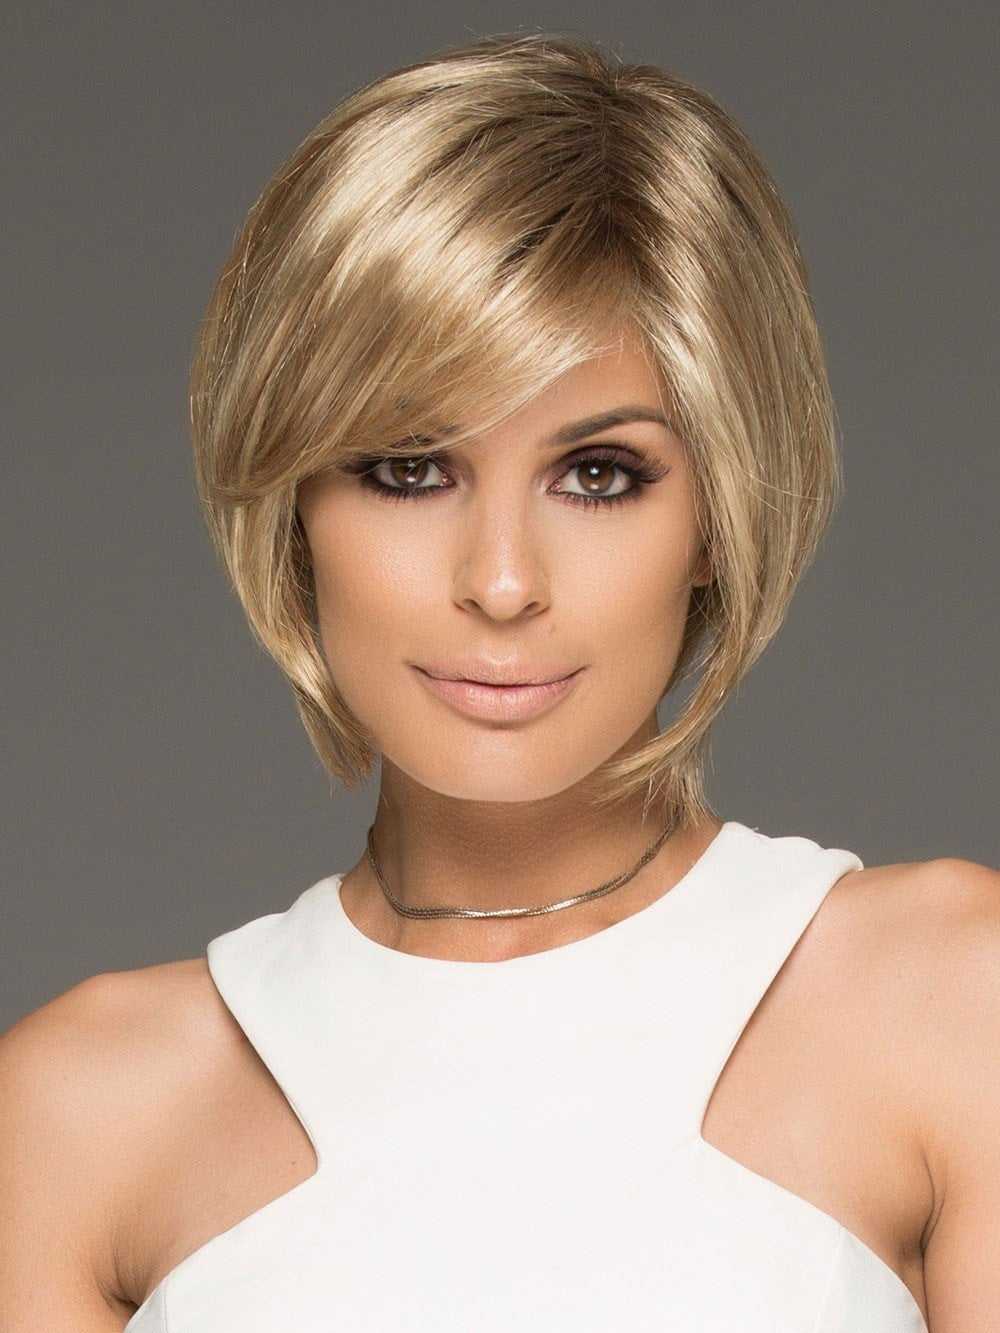 The fringe falls at eye level and is able to be pulled back or swept to the side with ease. The perfectly placed layers are texturized to provide light, airy movement